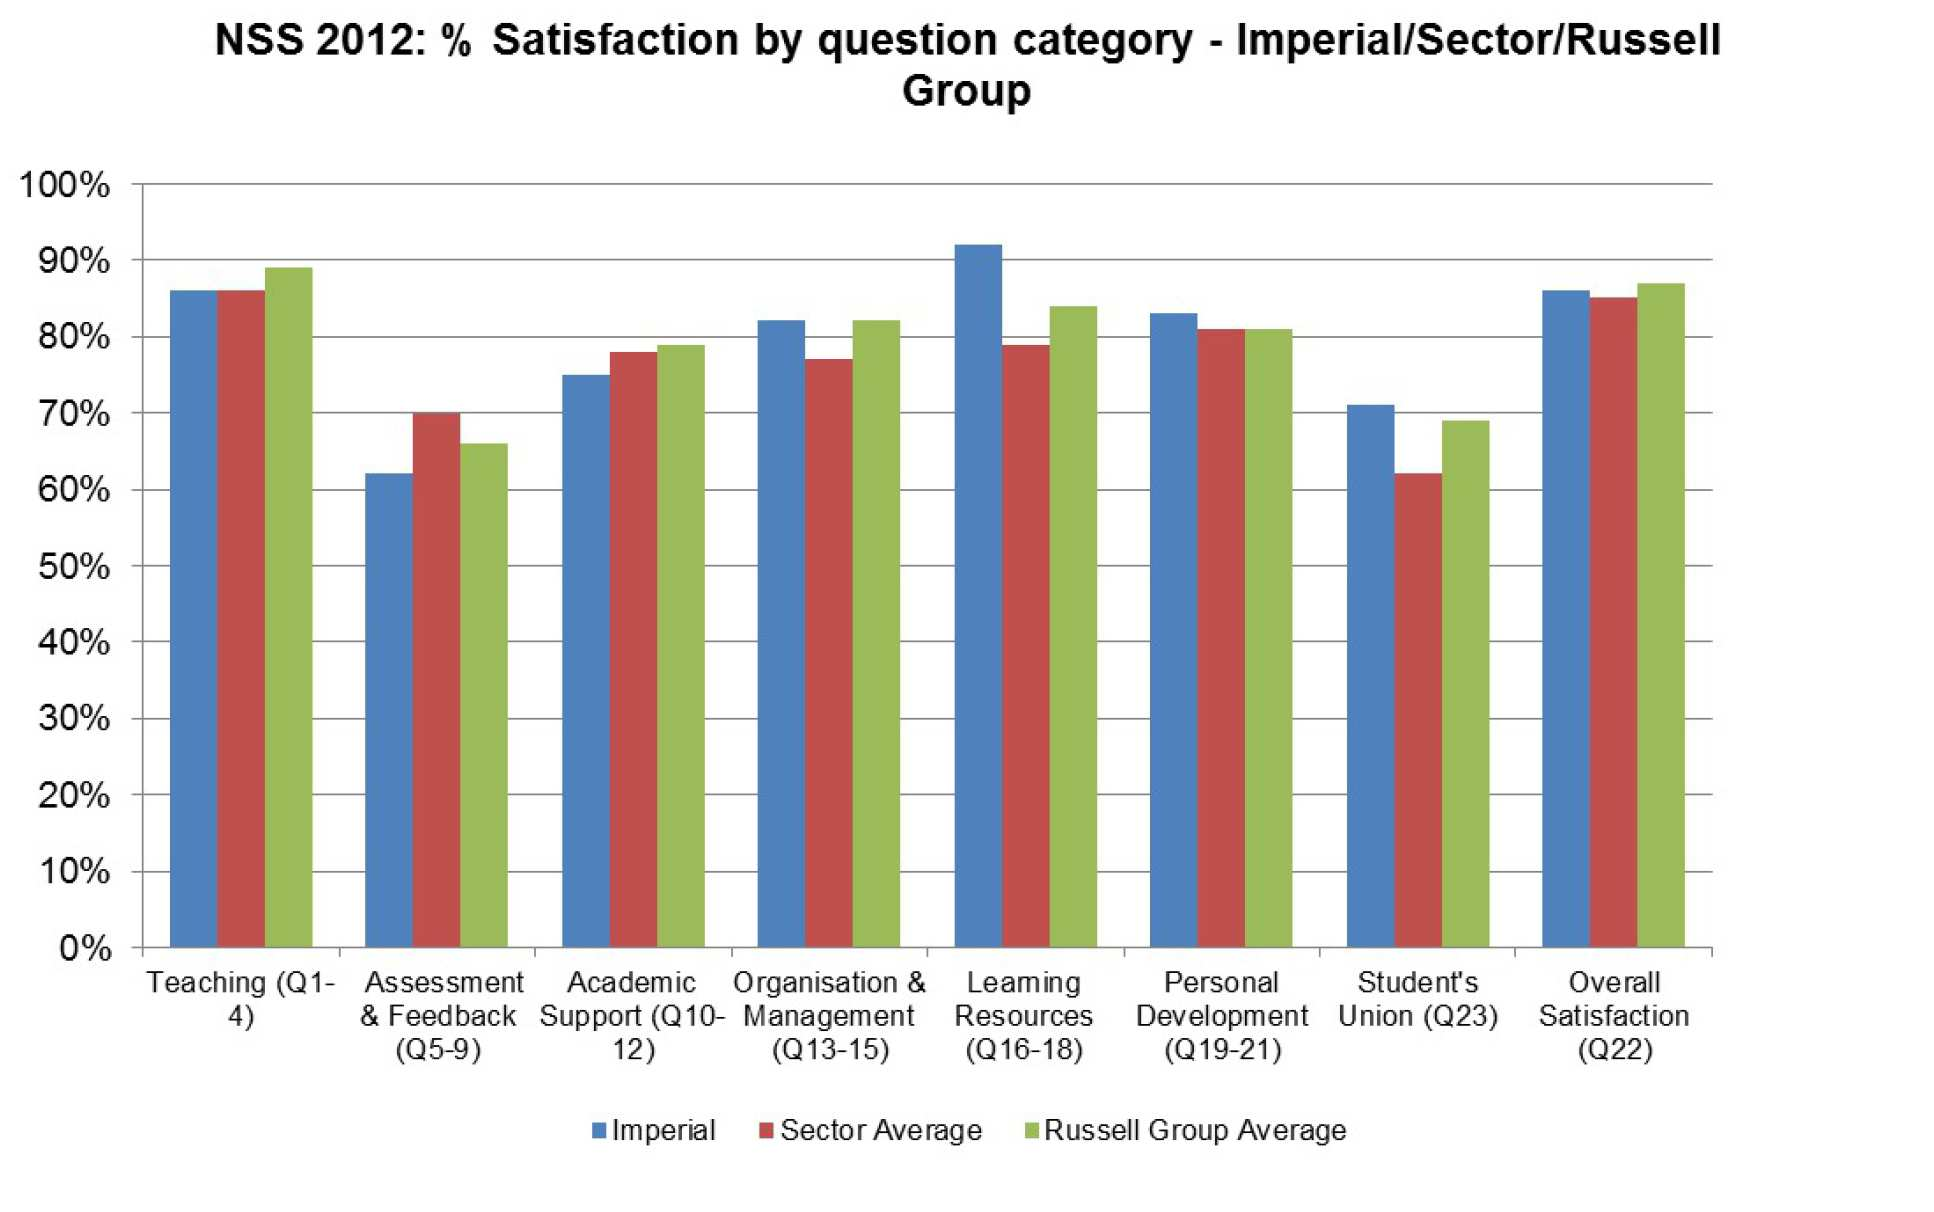 NSS 2012 Graph 1 - Percentage satisfaction by question category